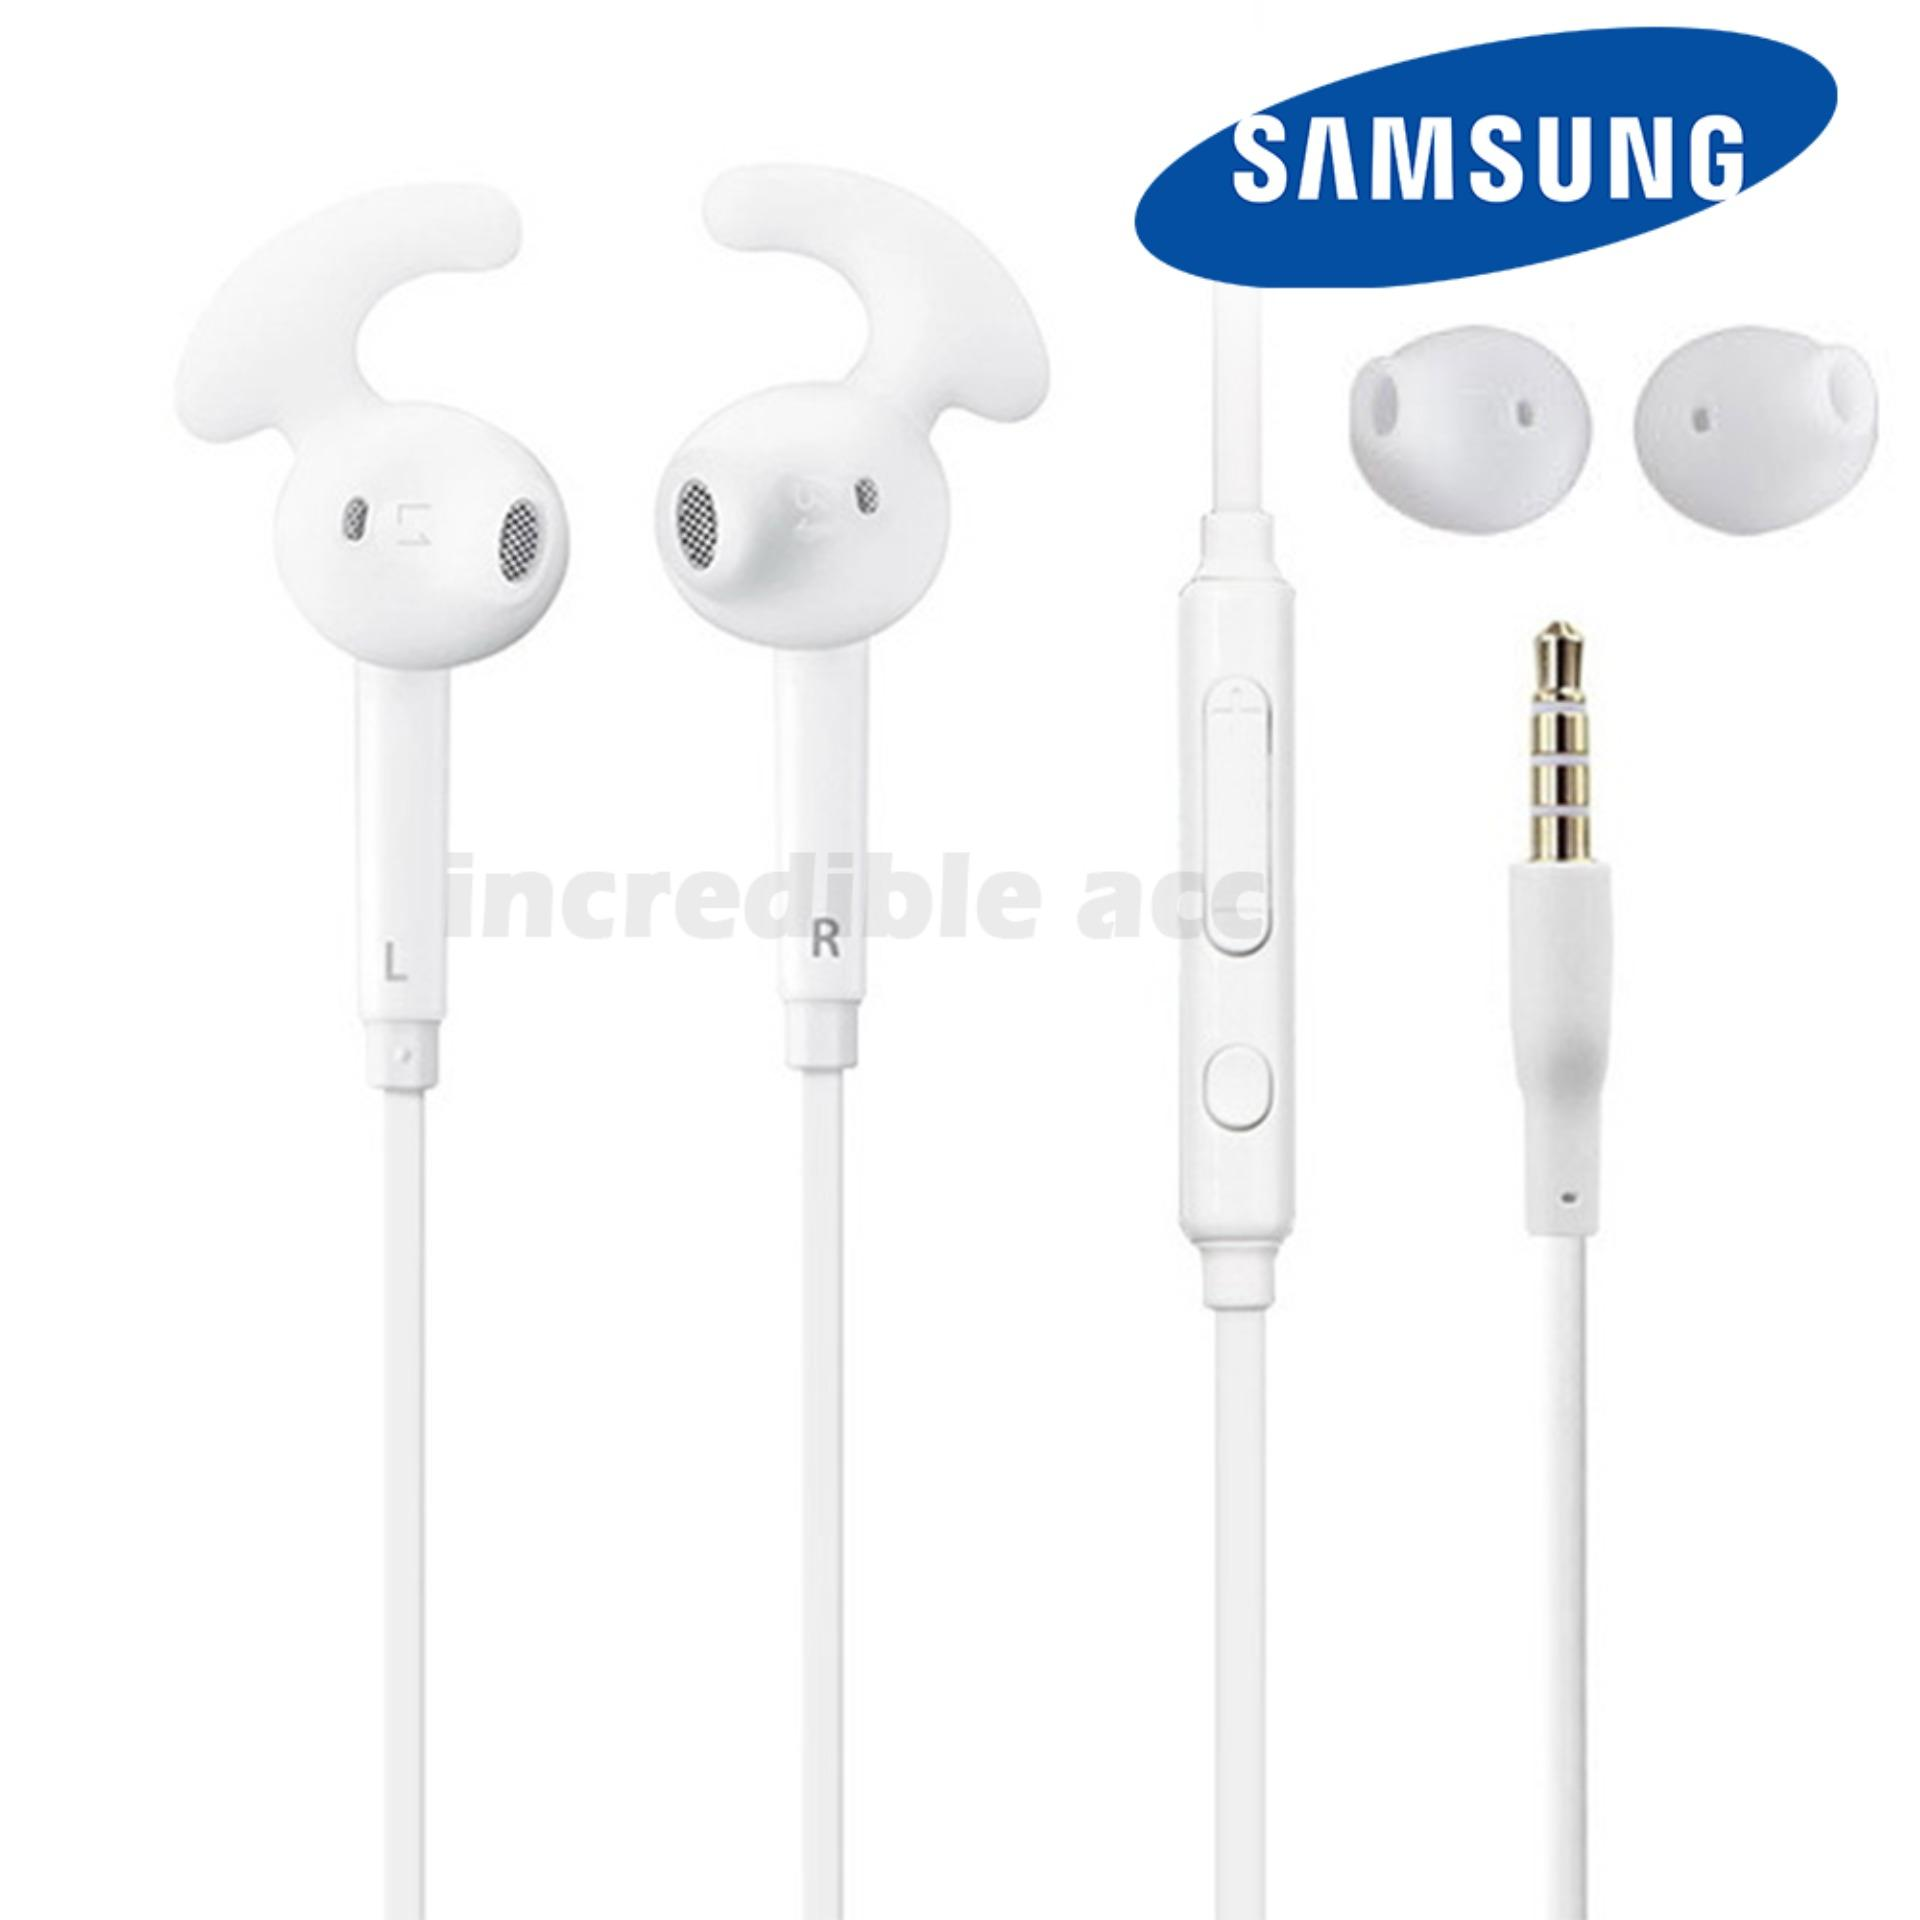 Samsung Headset In-Ear Handsfree EO-EG920 for Samsung Galaxy S5, S6, S7, S7 Edge 3.5mm Stereo Sports Earphone Bass HD Audio - White